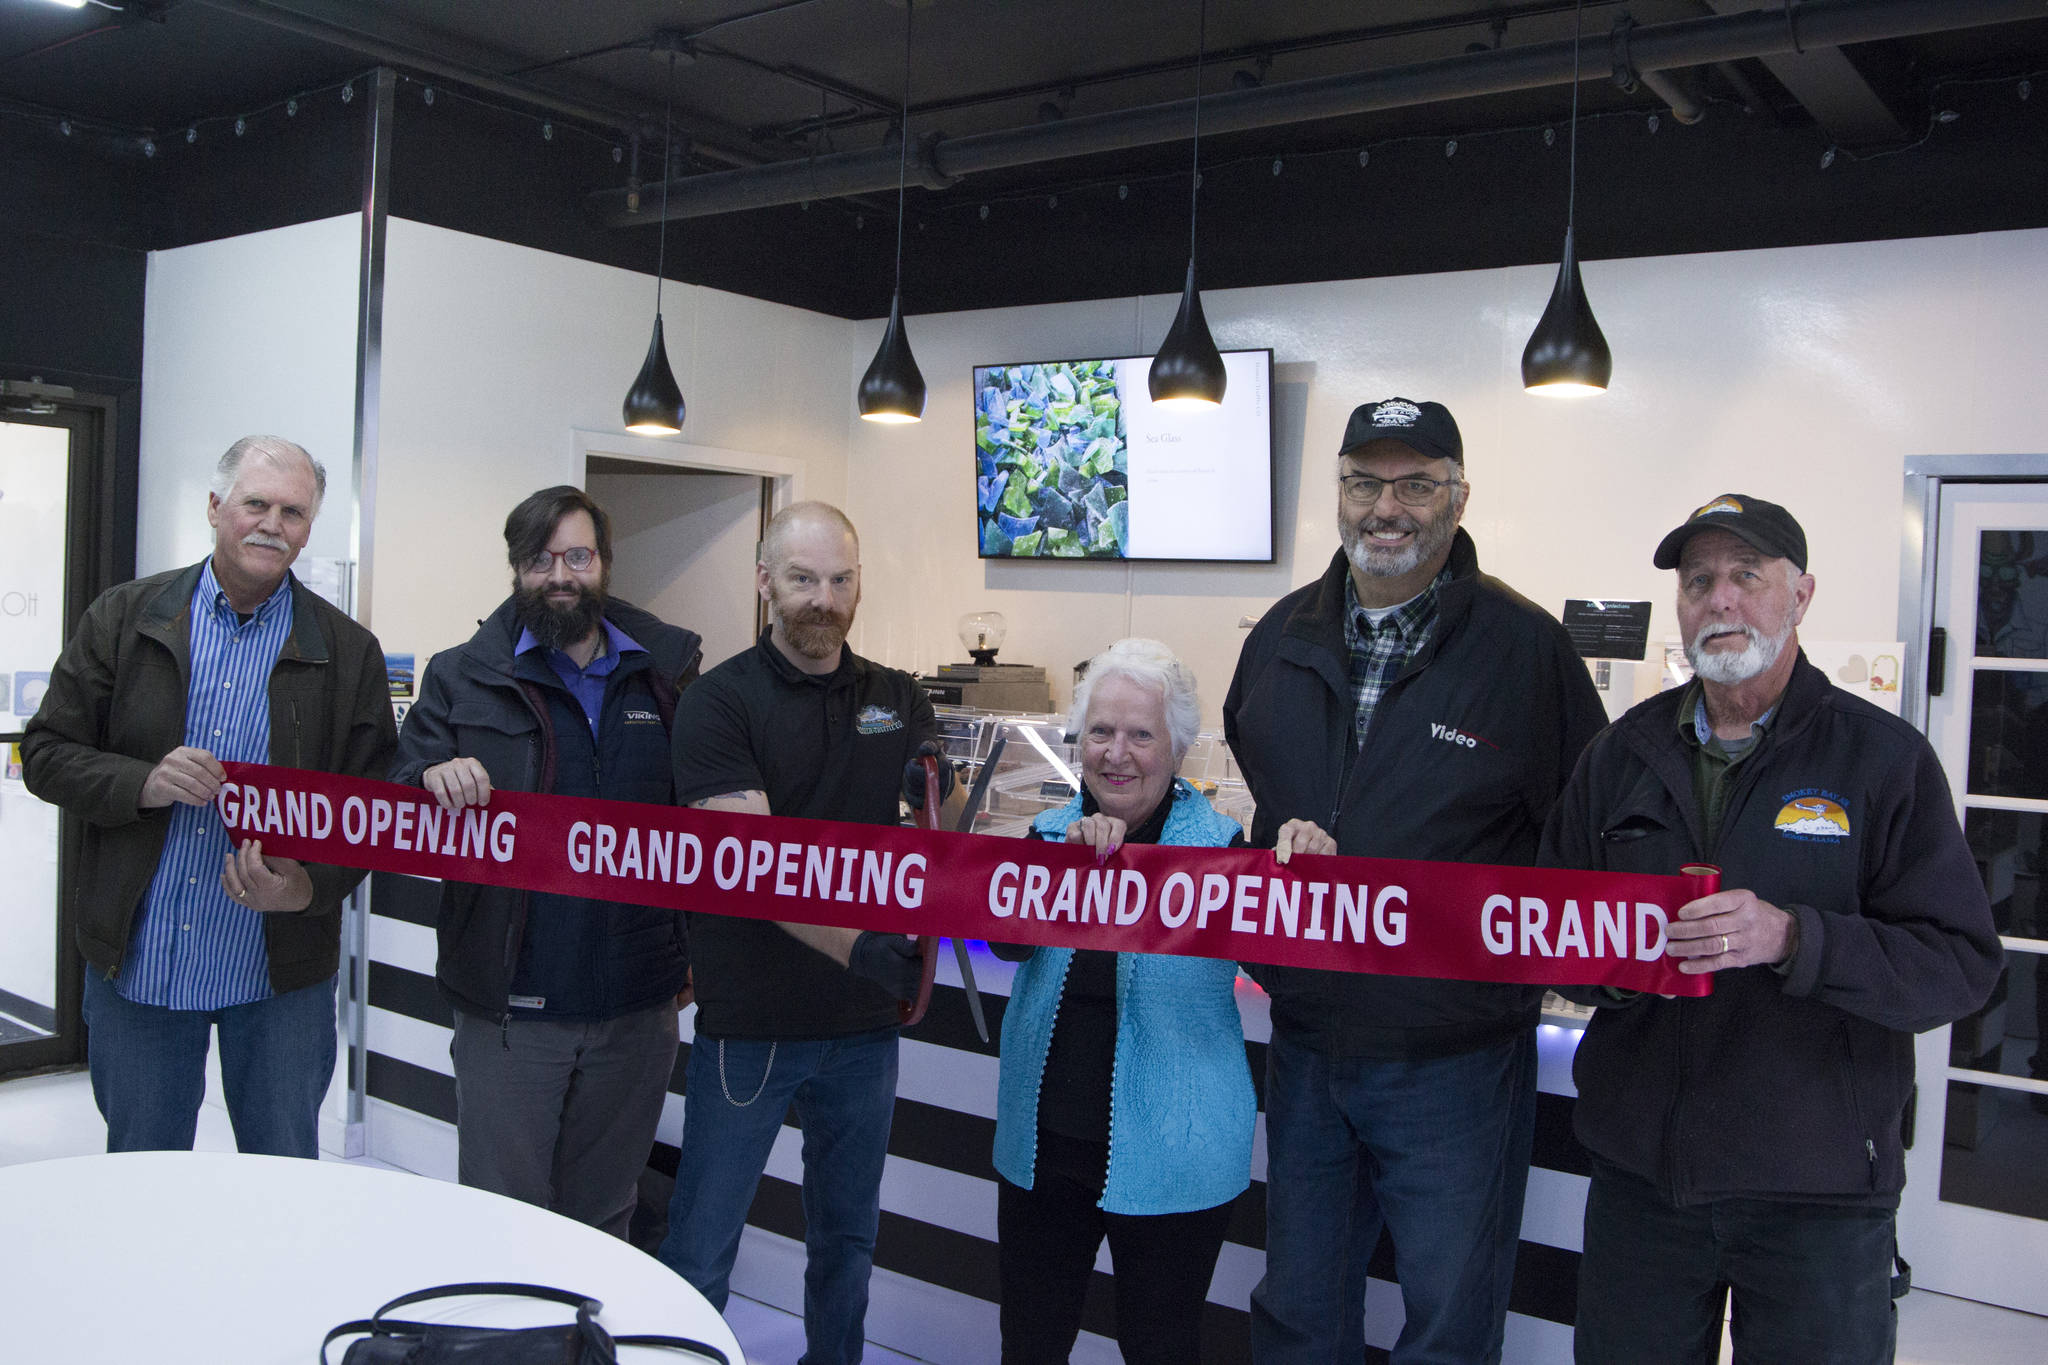 Homer Truffle Co. owner David Briggs cuts the grand opening ribbon at the relaunch of his business on Aug. 17. He is pictured with Homer Chamber of Commerce and Visitor Center board members and employees. (Photo by Sarah Knapp/Homer News)